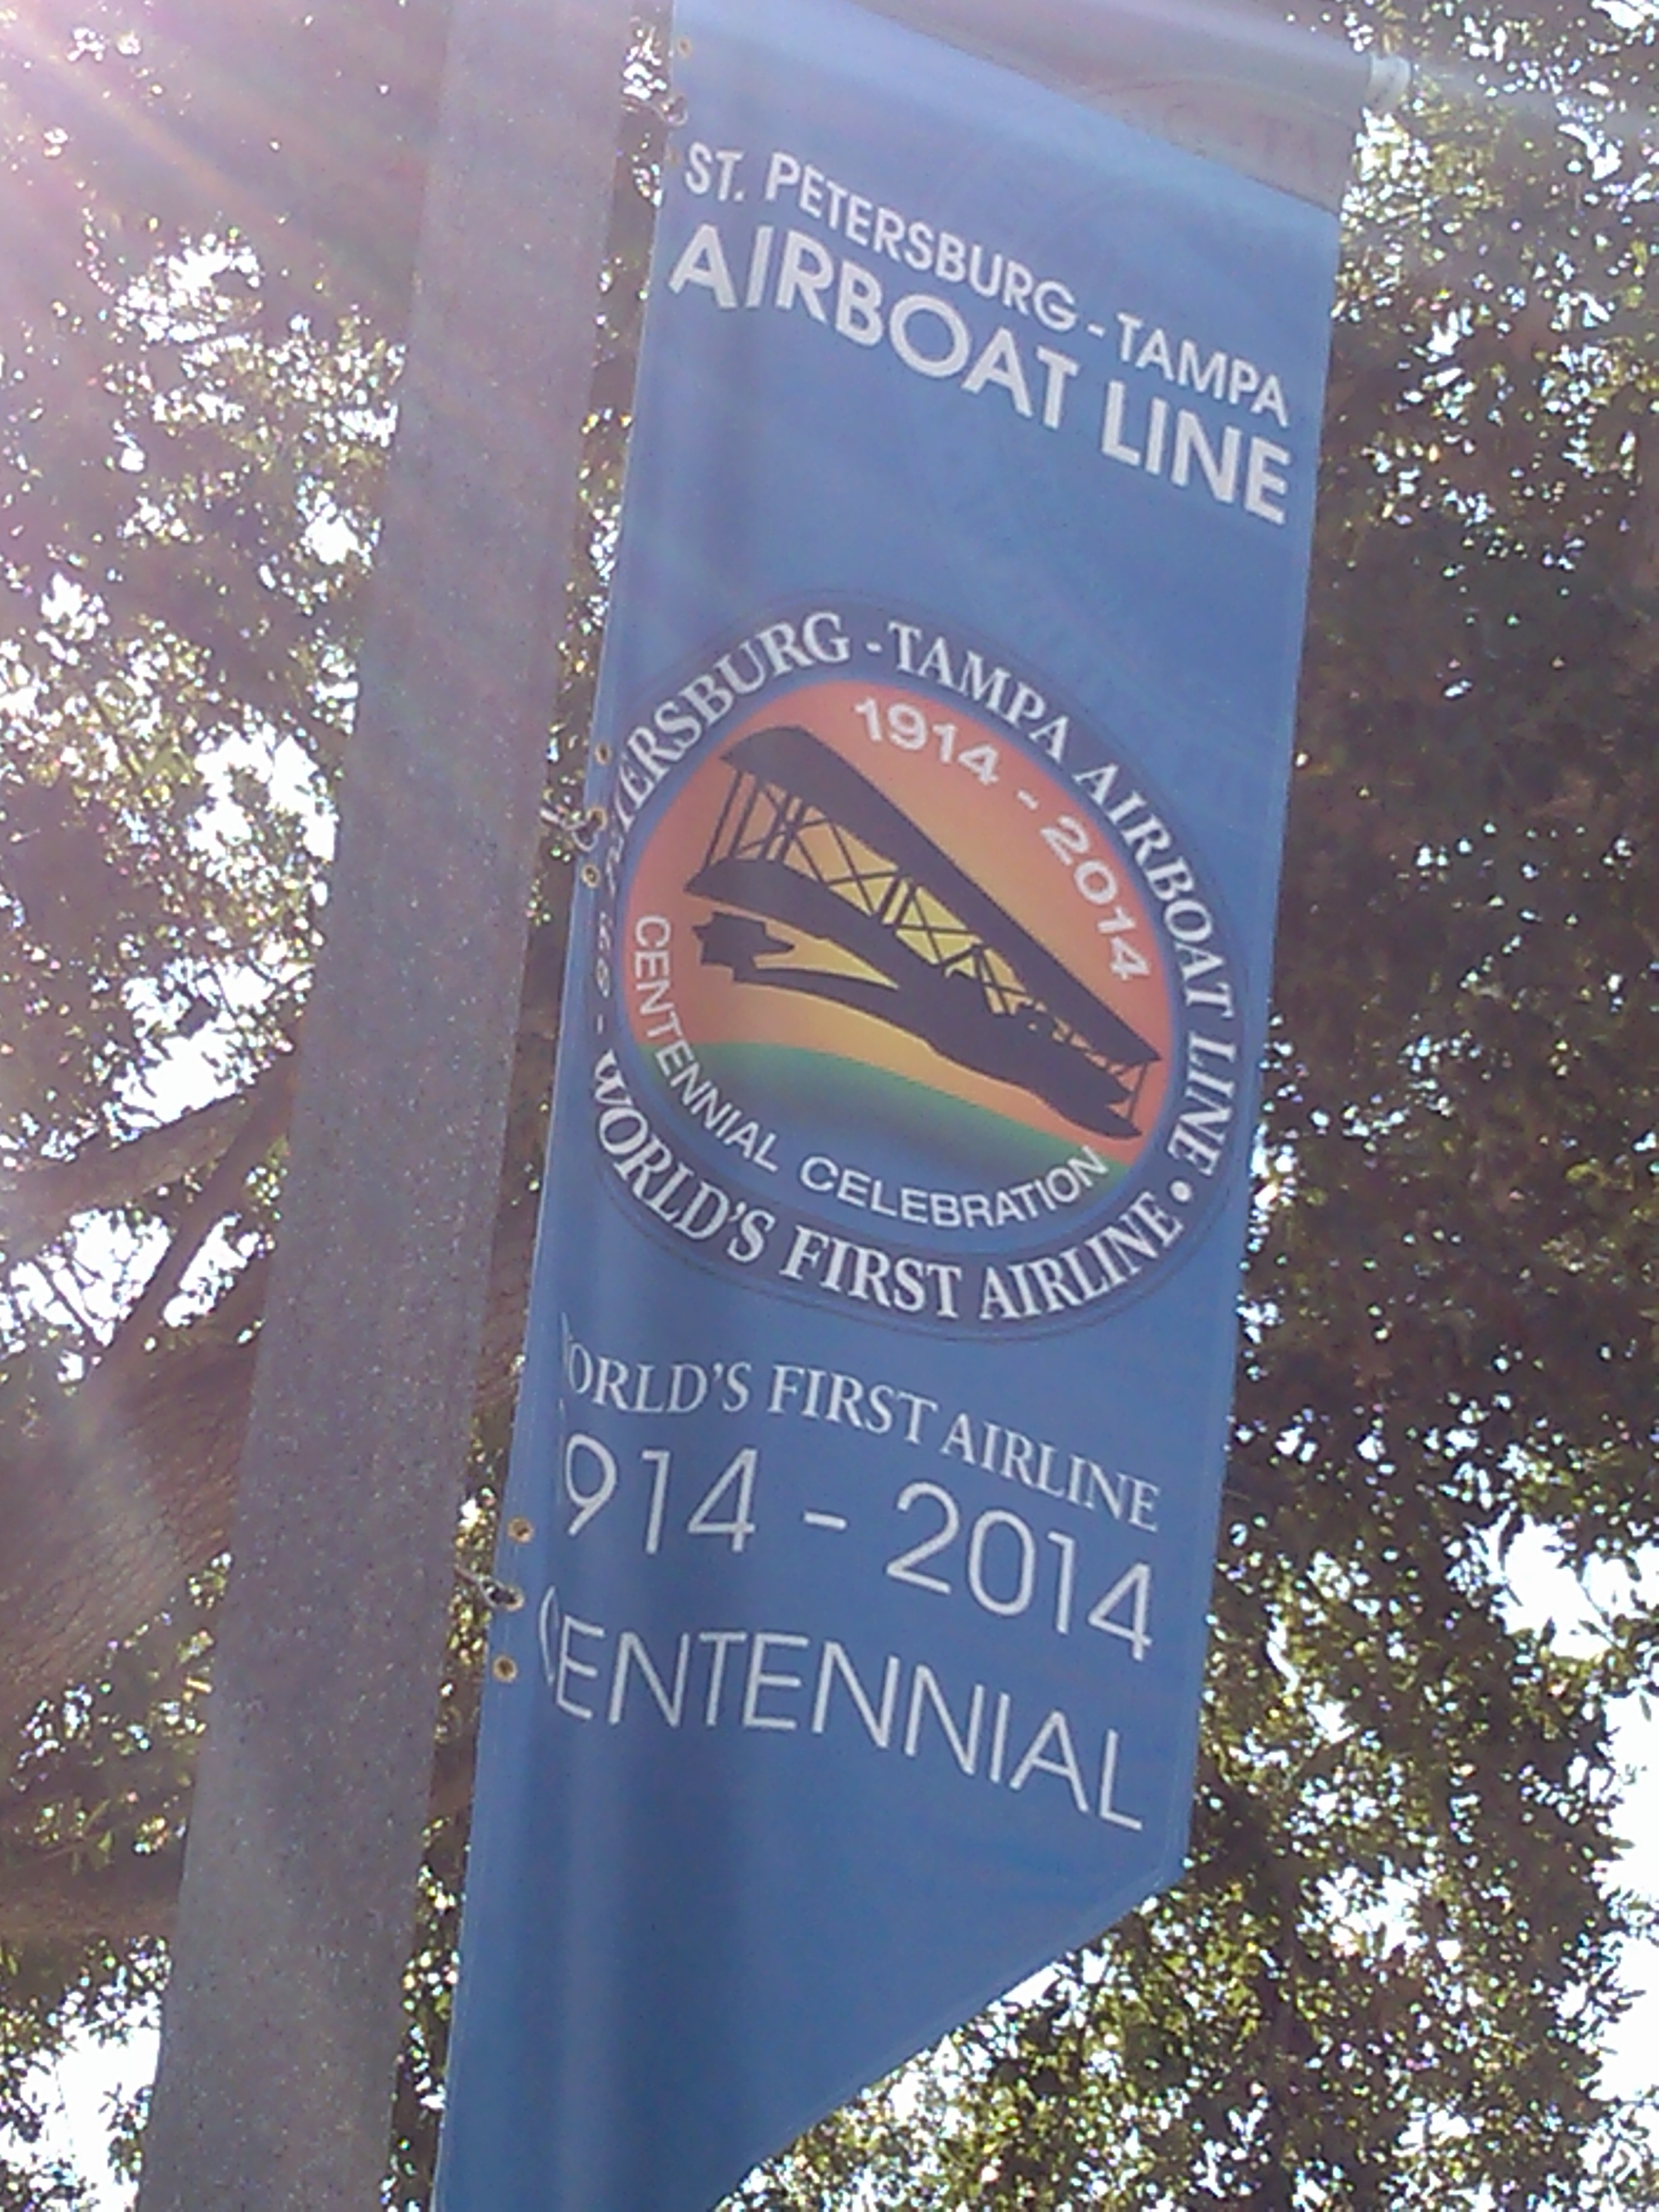 Flight 2014 Banner, 11 Nov '13.jpg